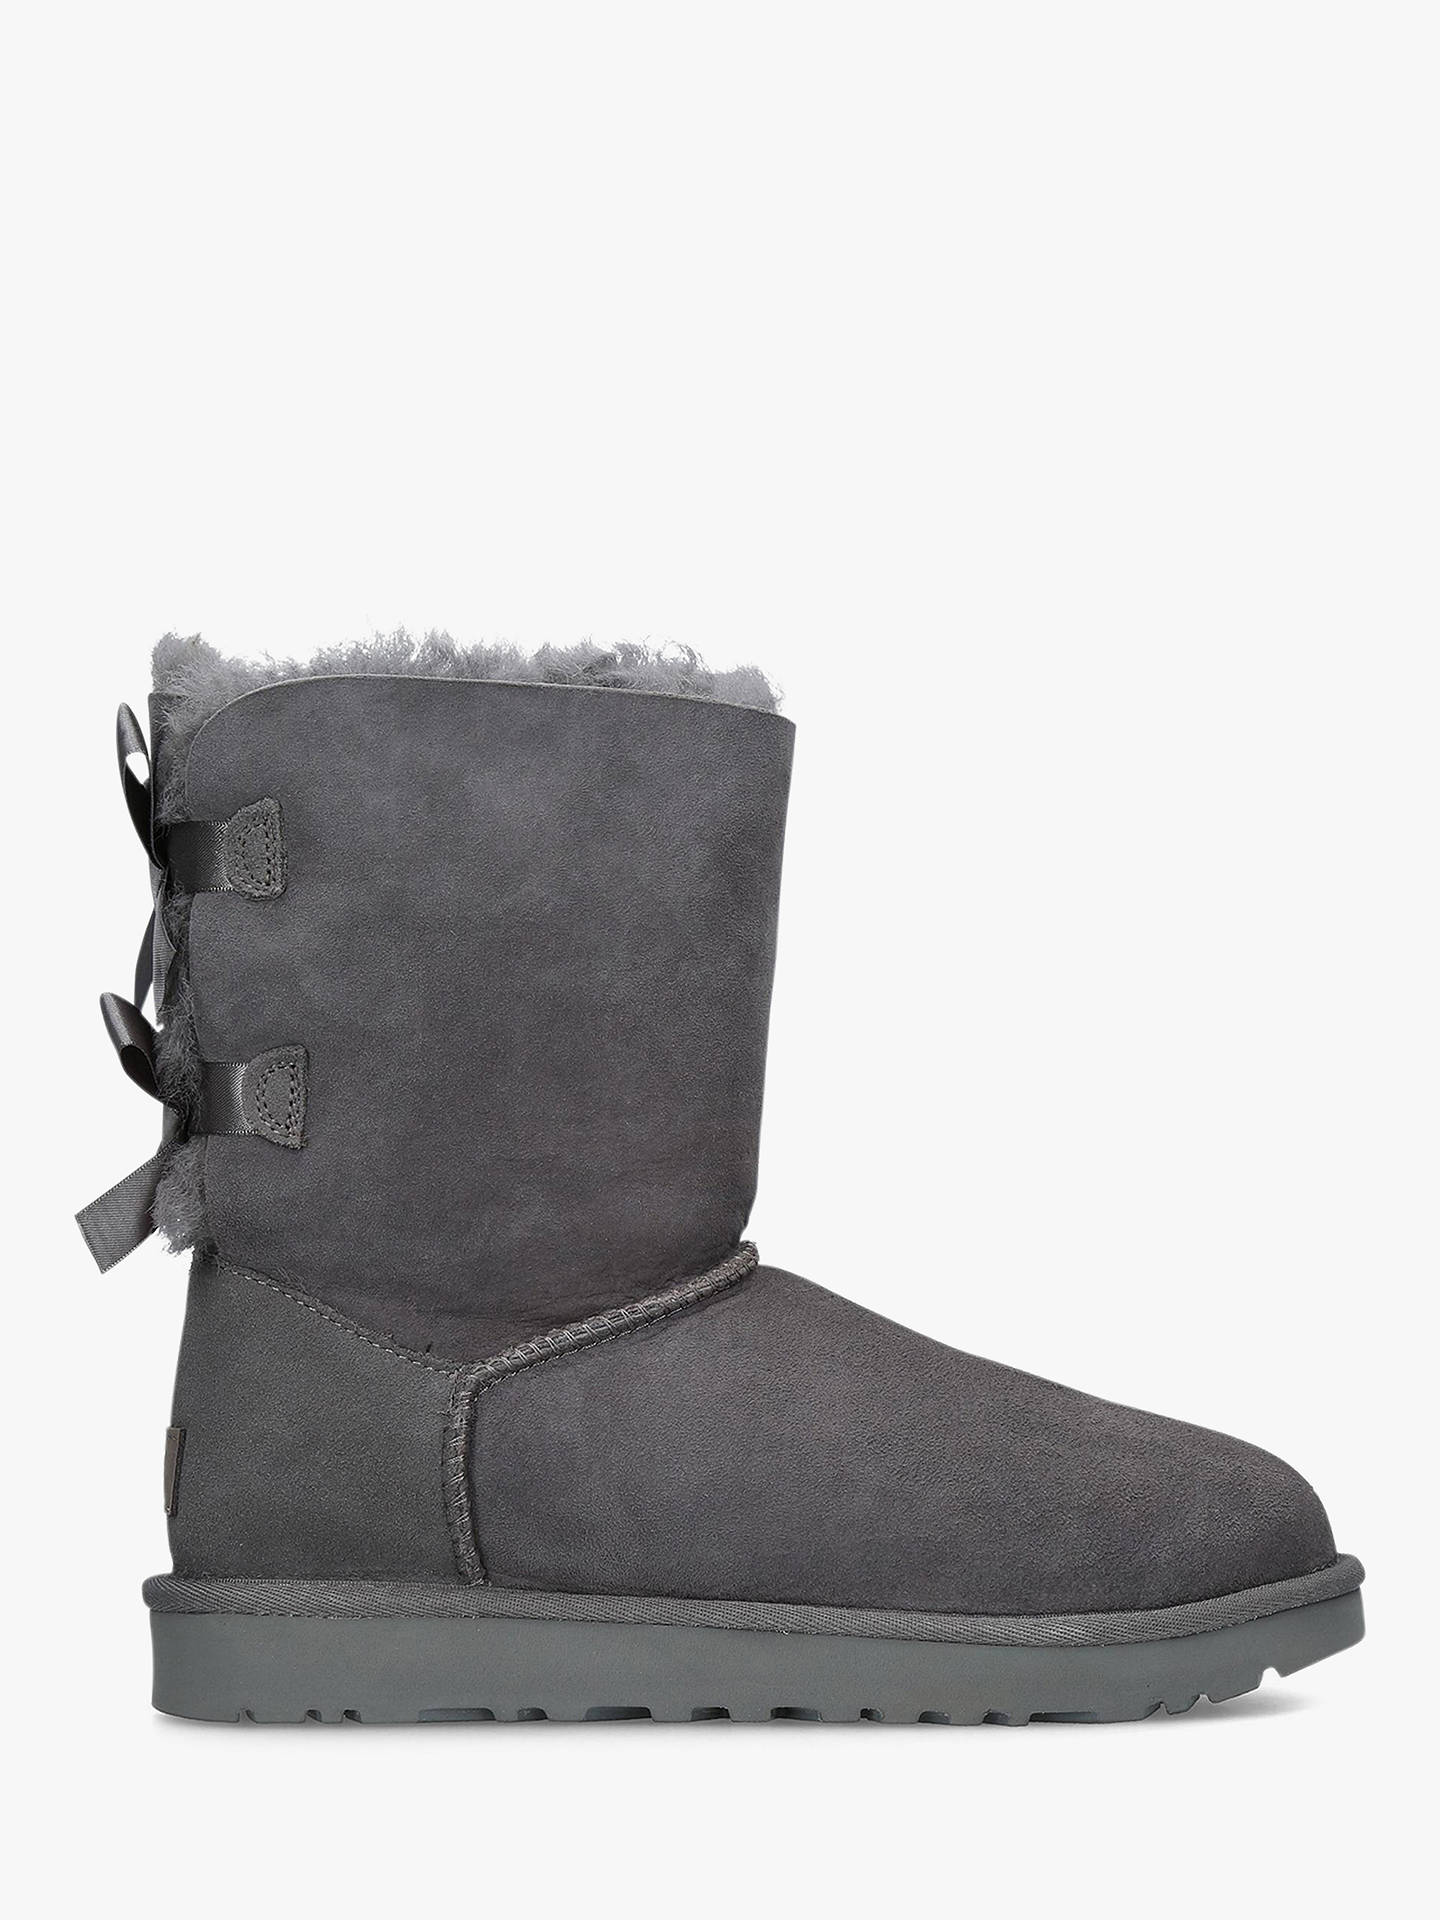 ac391489e81 UGG Bailey Bow Sheepskin Short Boots at John Lewis & Partners